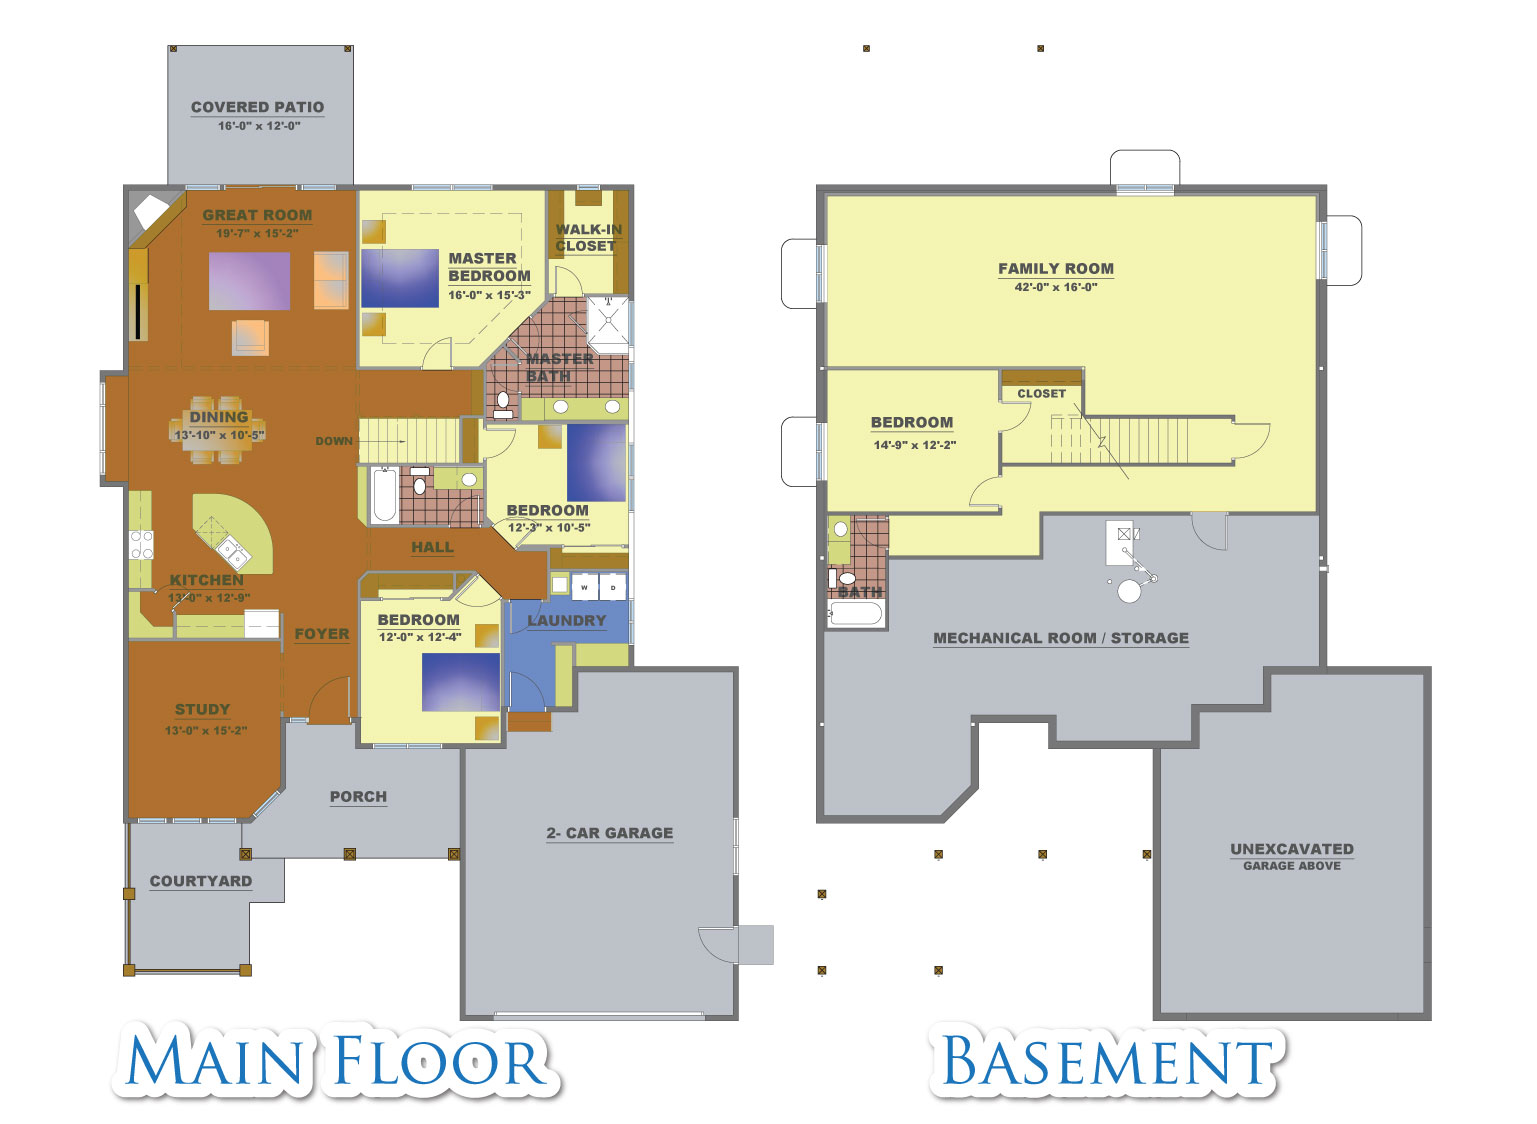 glen-co-floorplan-sfph-telluride-thmb